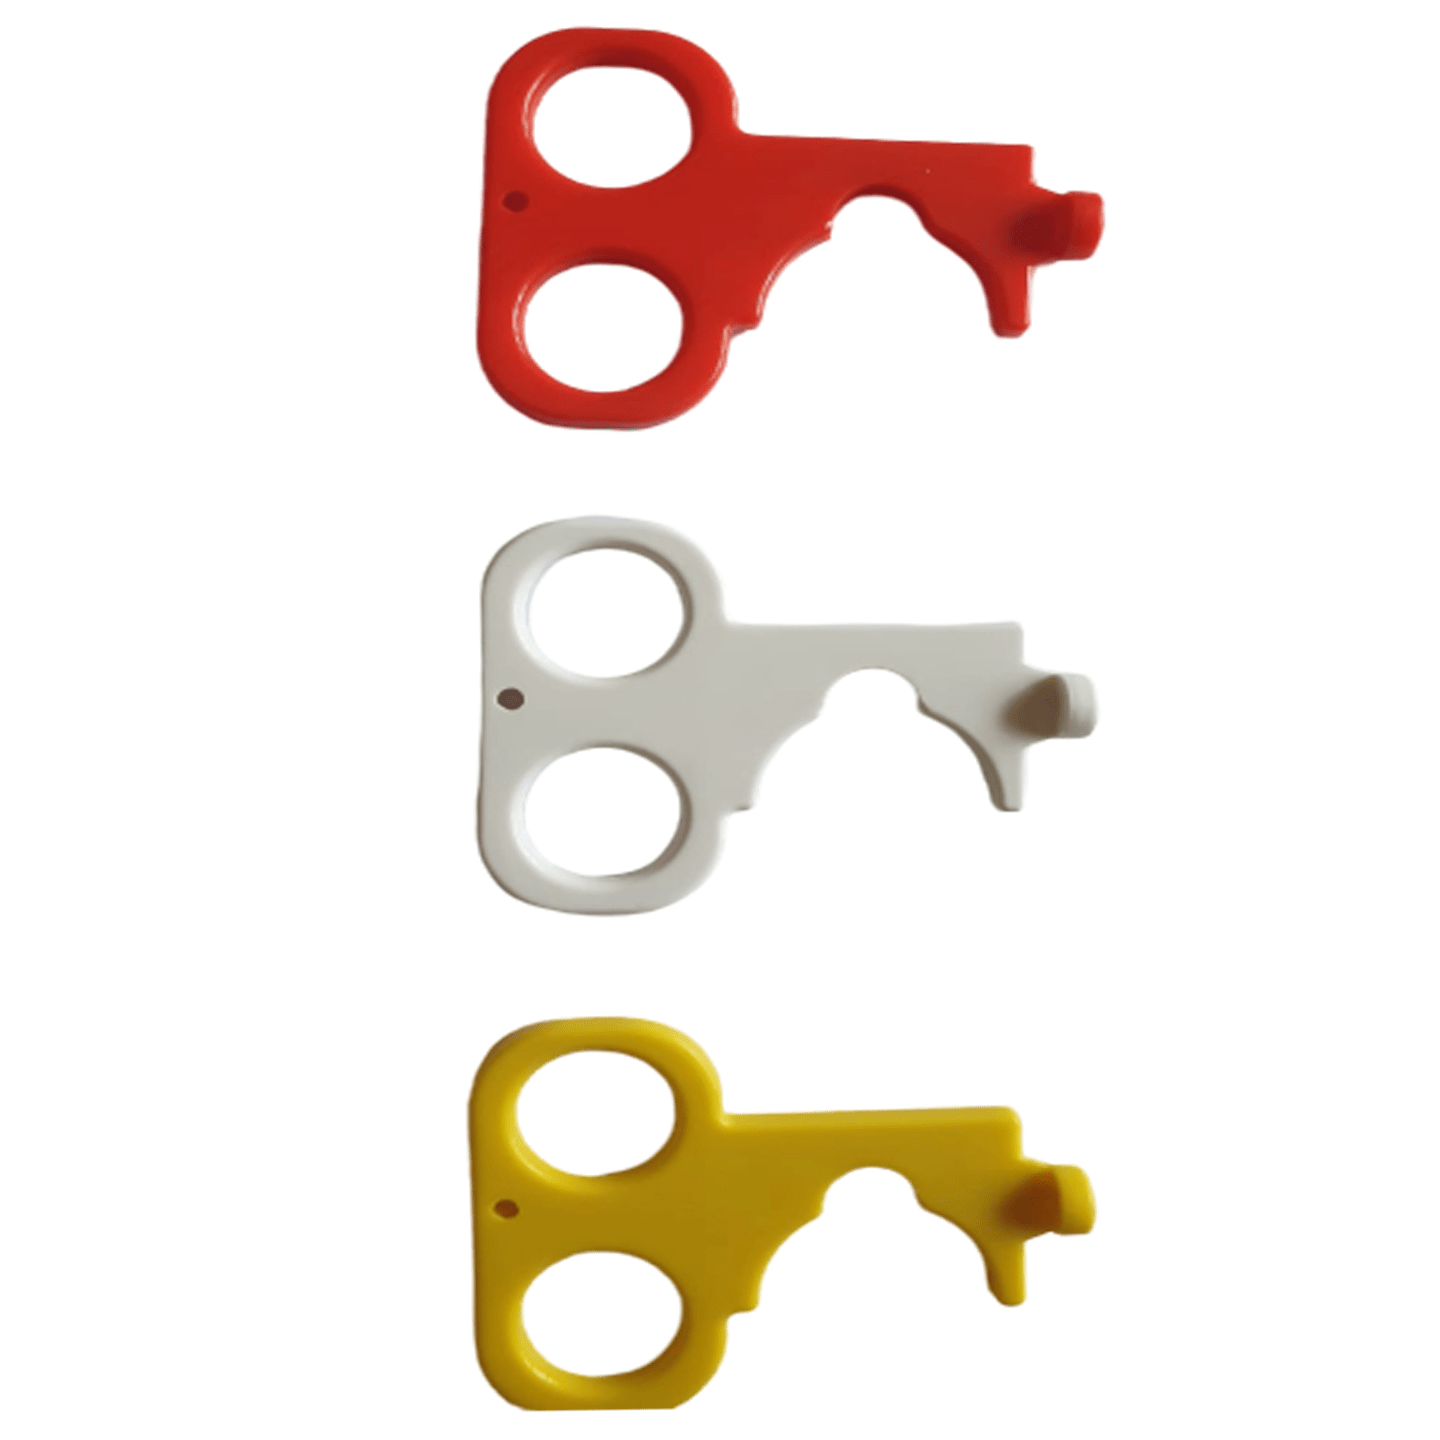 Safety Key (Pack of 10) | Covid Prevention Product CP-06